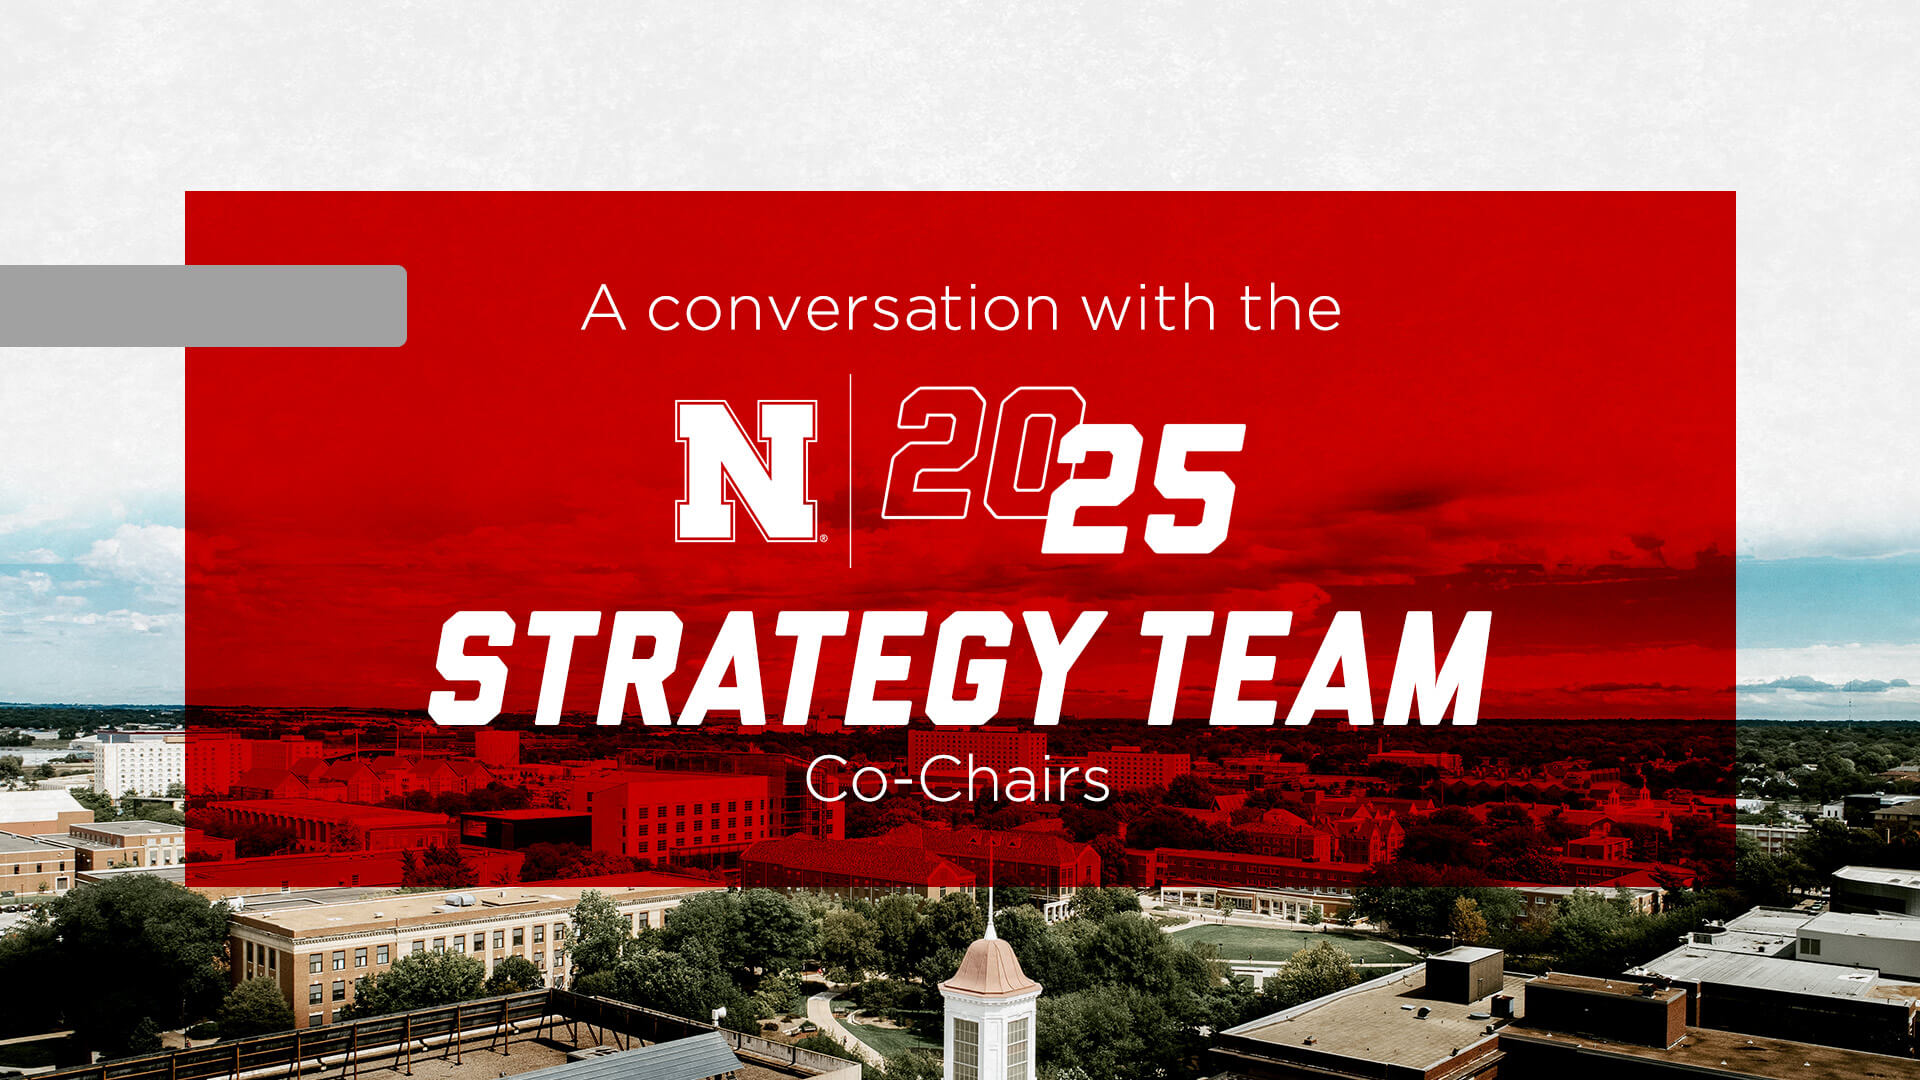 A Conversation with the N|2025 Strategy Team Co-Chairs